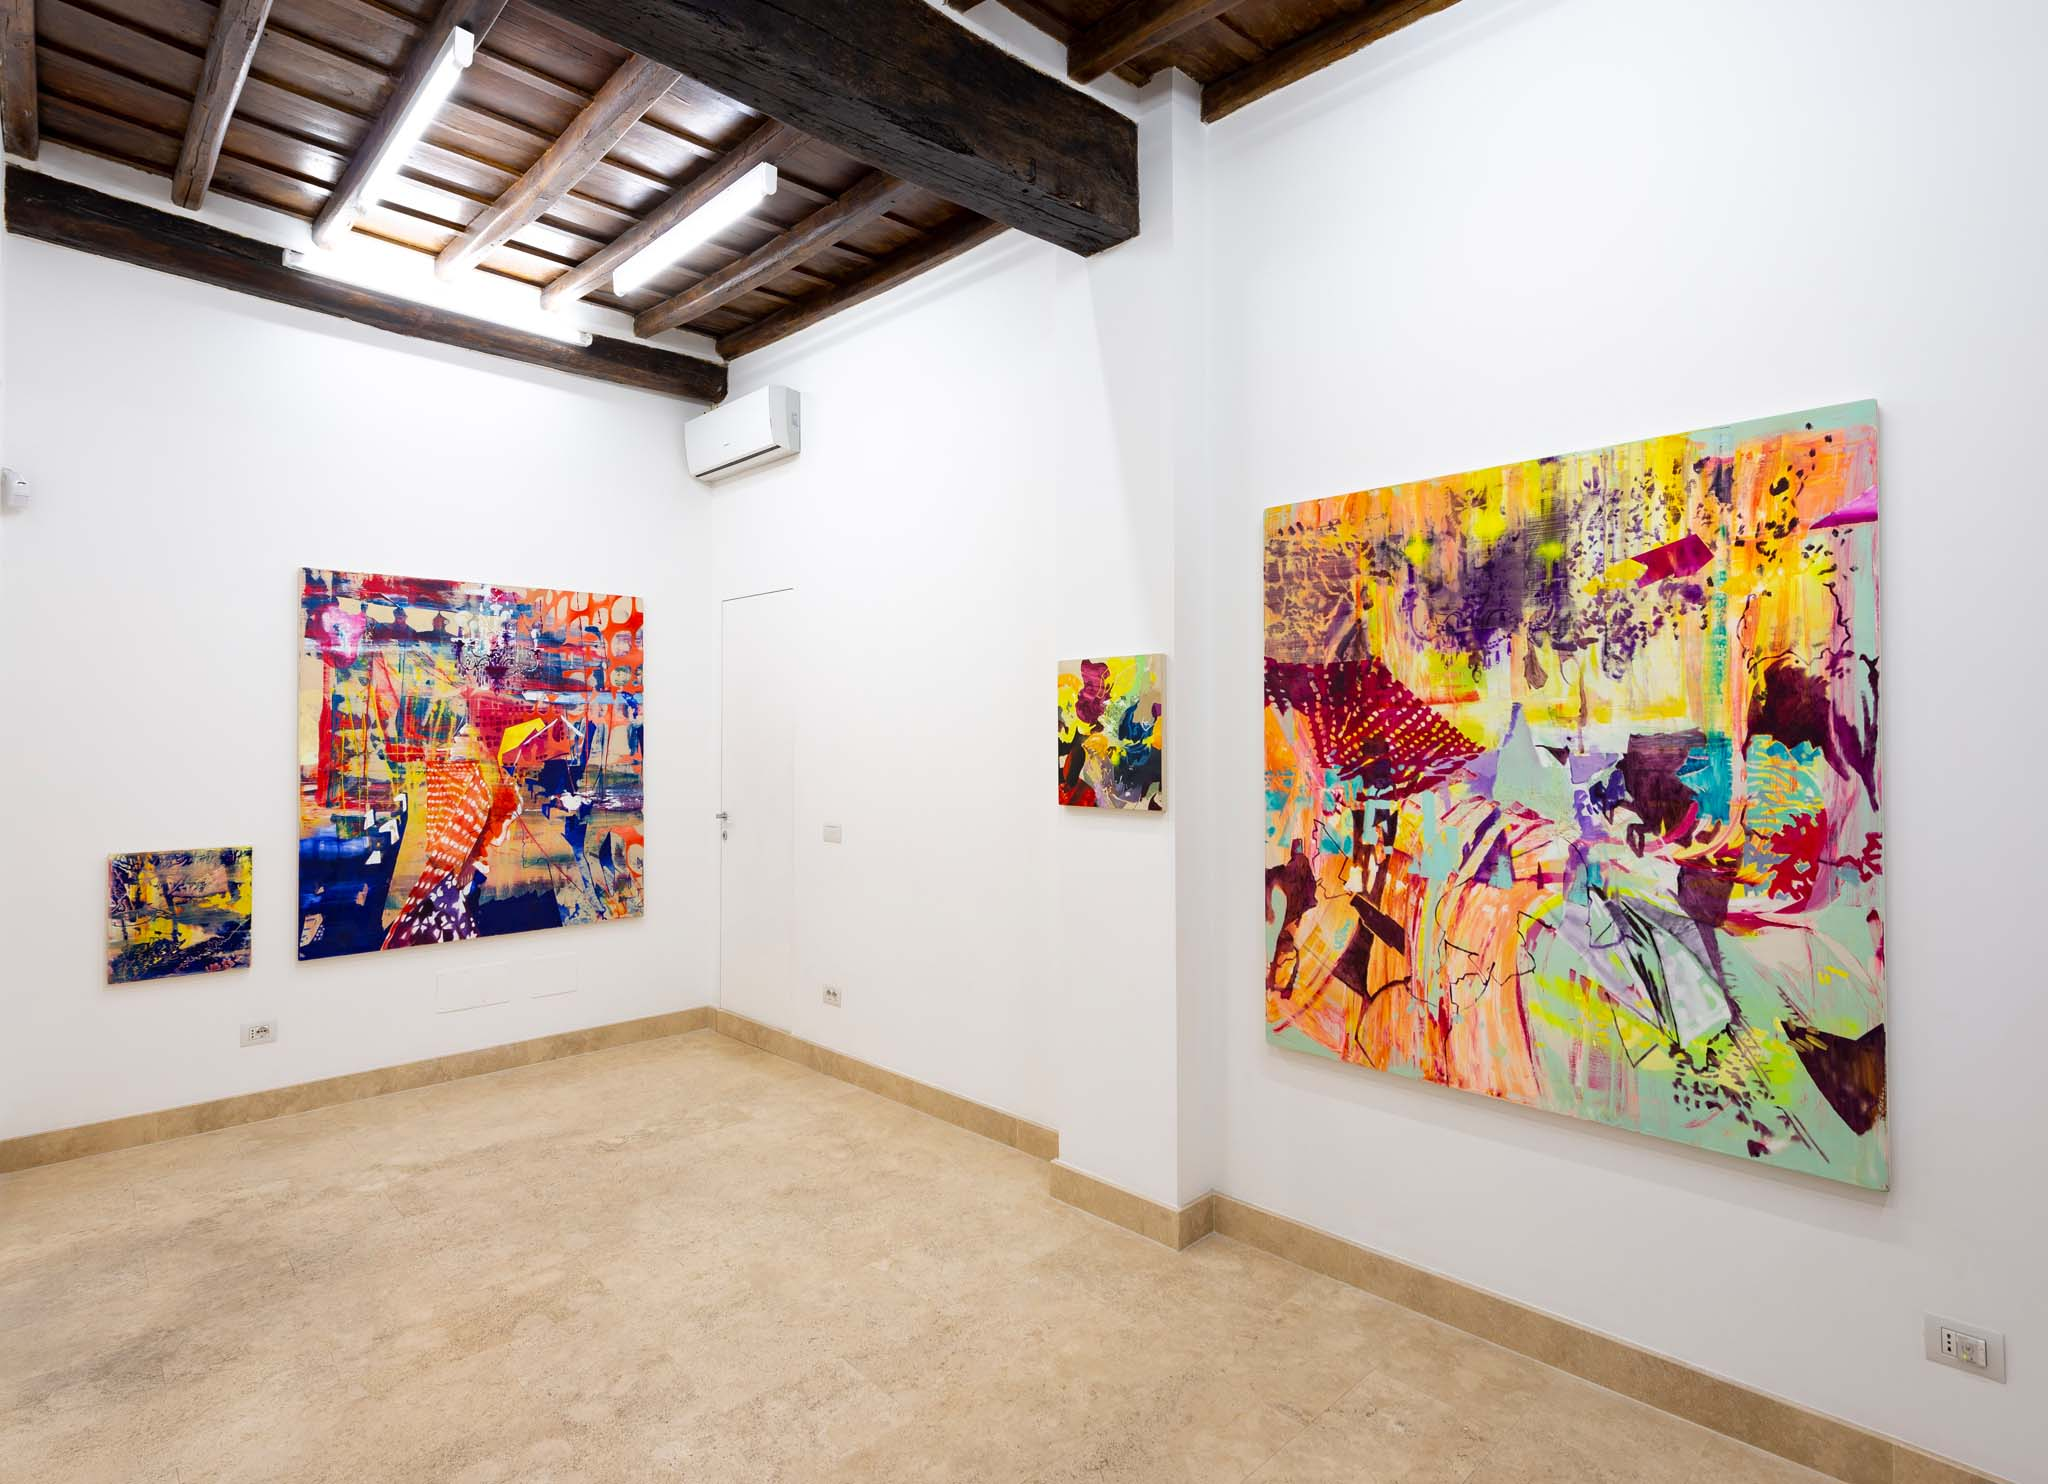 Zanbagh Lofti, I'm just killing time, installation view. Photo courtesy Giorgio Benni